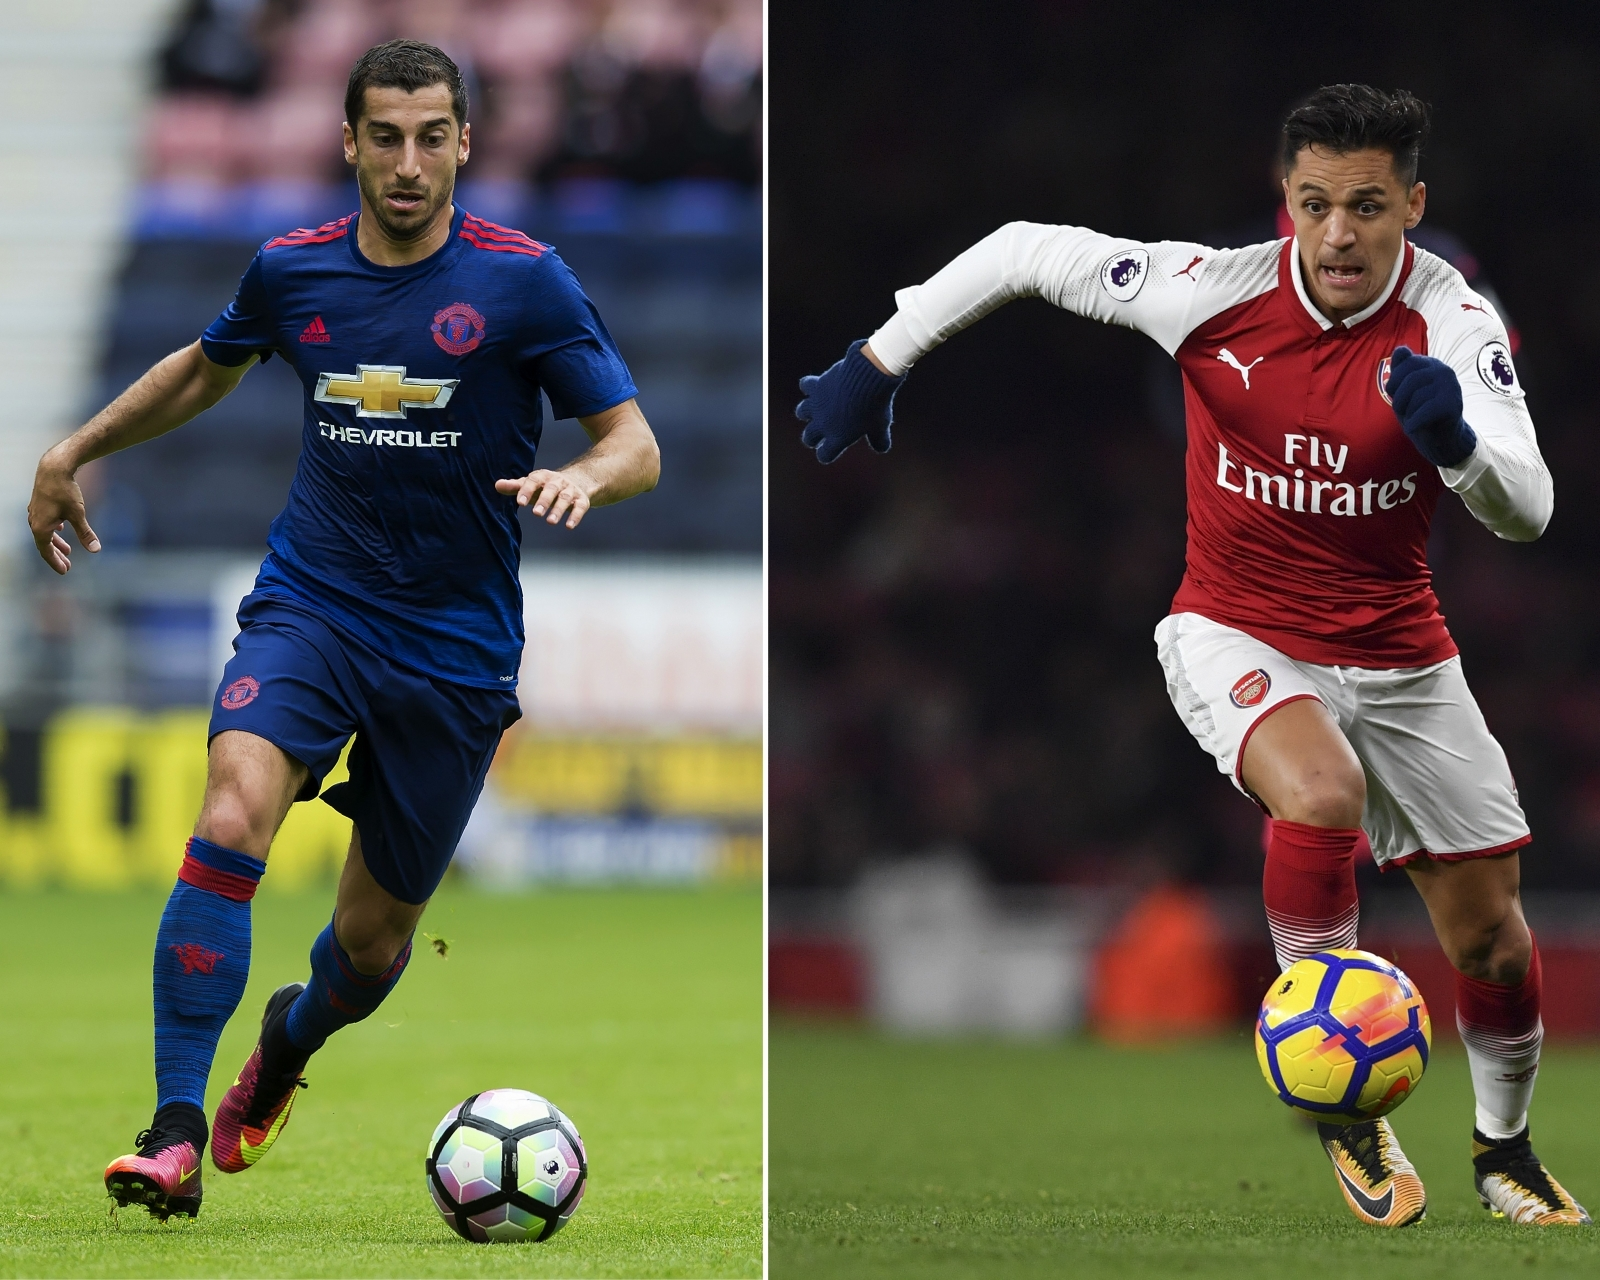 Arsene Wenger confident 'world-class' Henrikh Mkhitaryan can coexist with Mesut Ozil at Arsenal